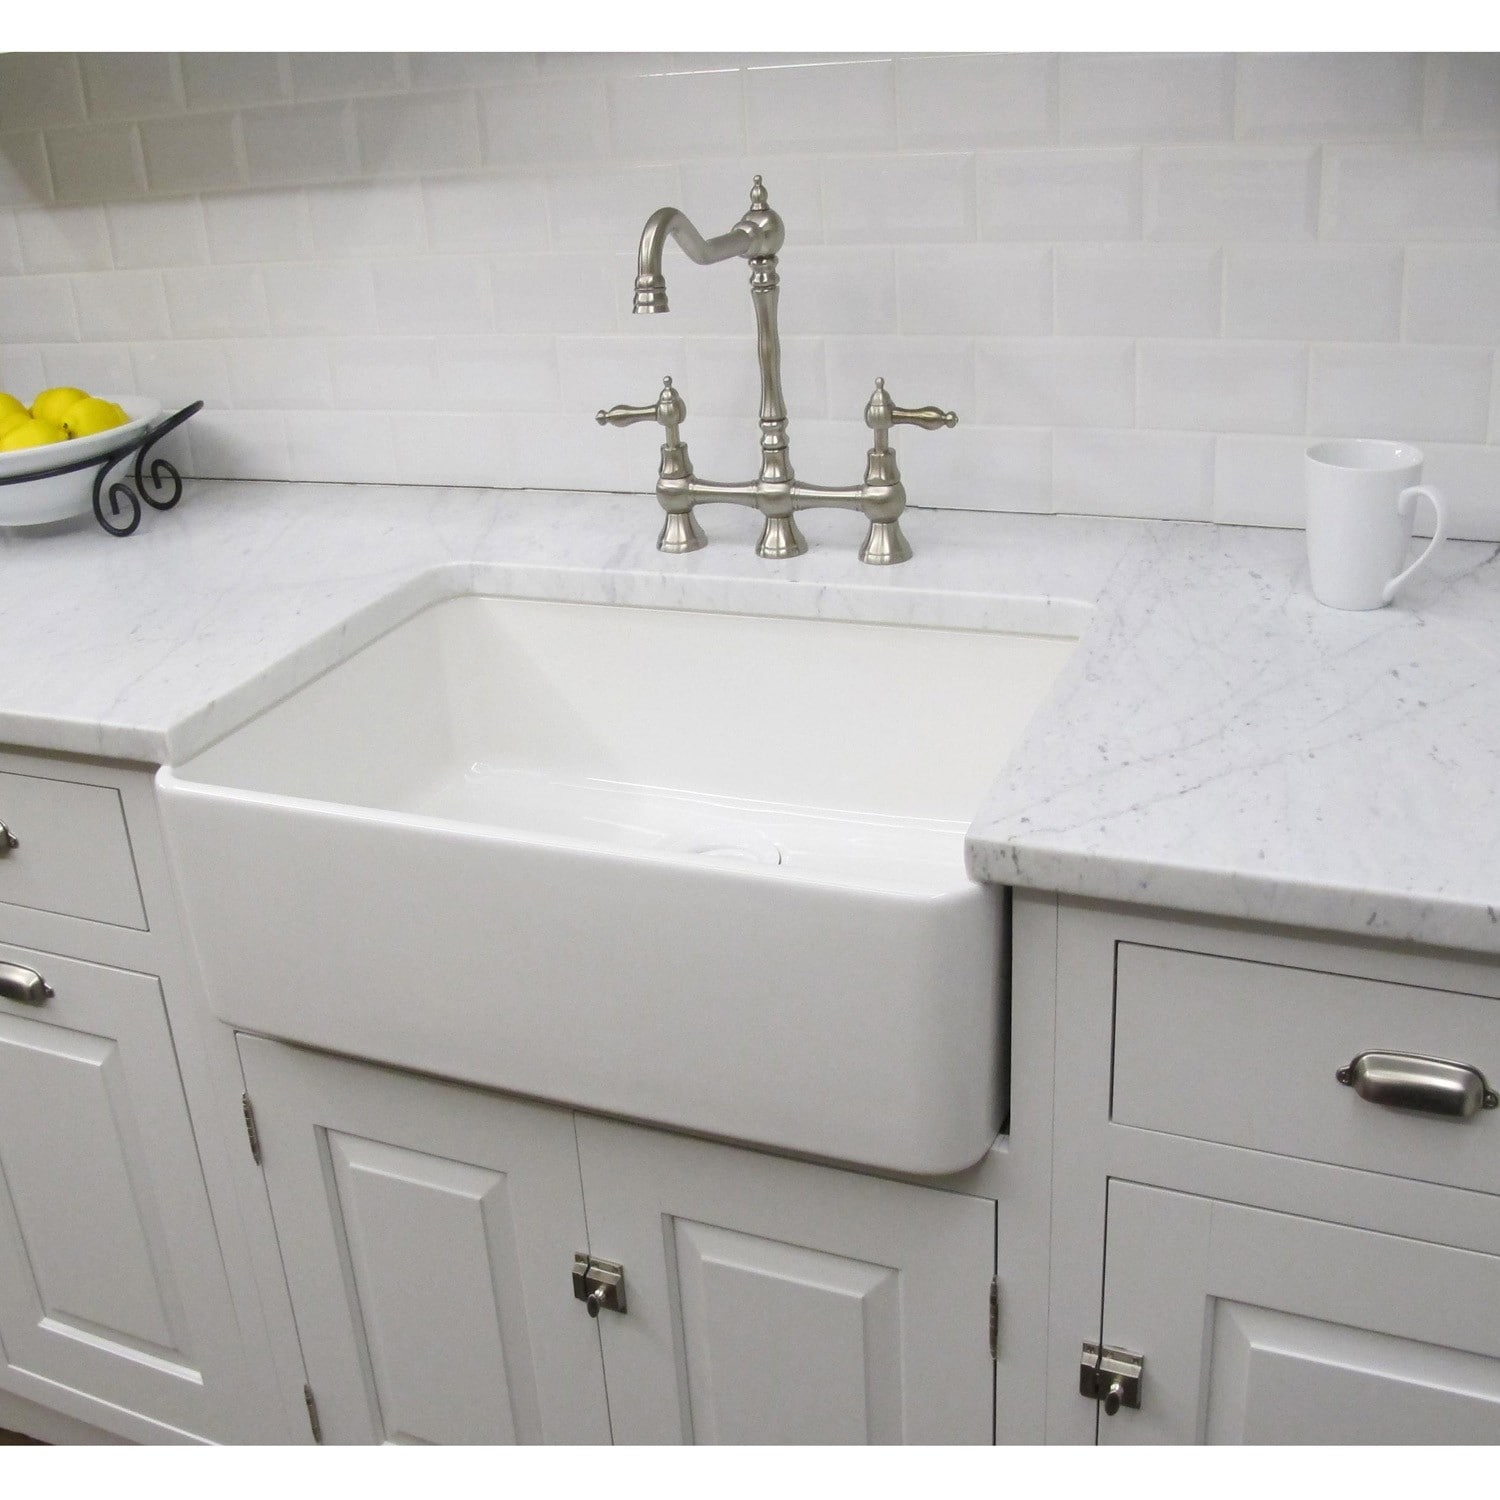 somette fireclay sutton white farmhouse kitchen sink overstock shopping great. Black Bedroom Furniture Sets. Home Design Ideas